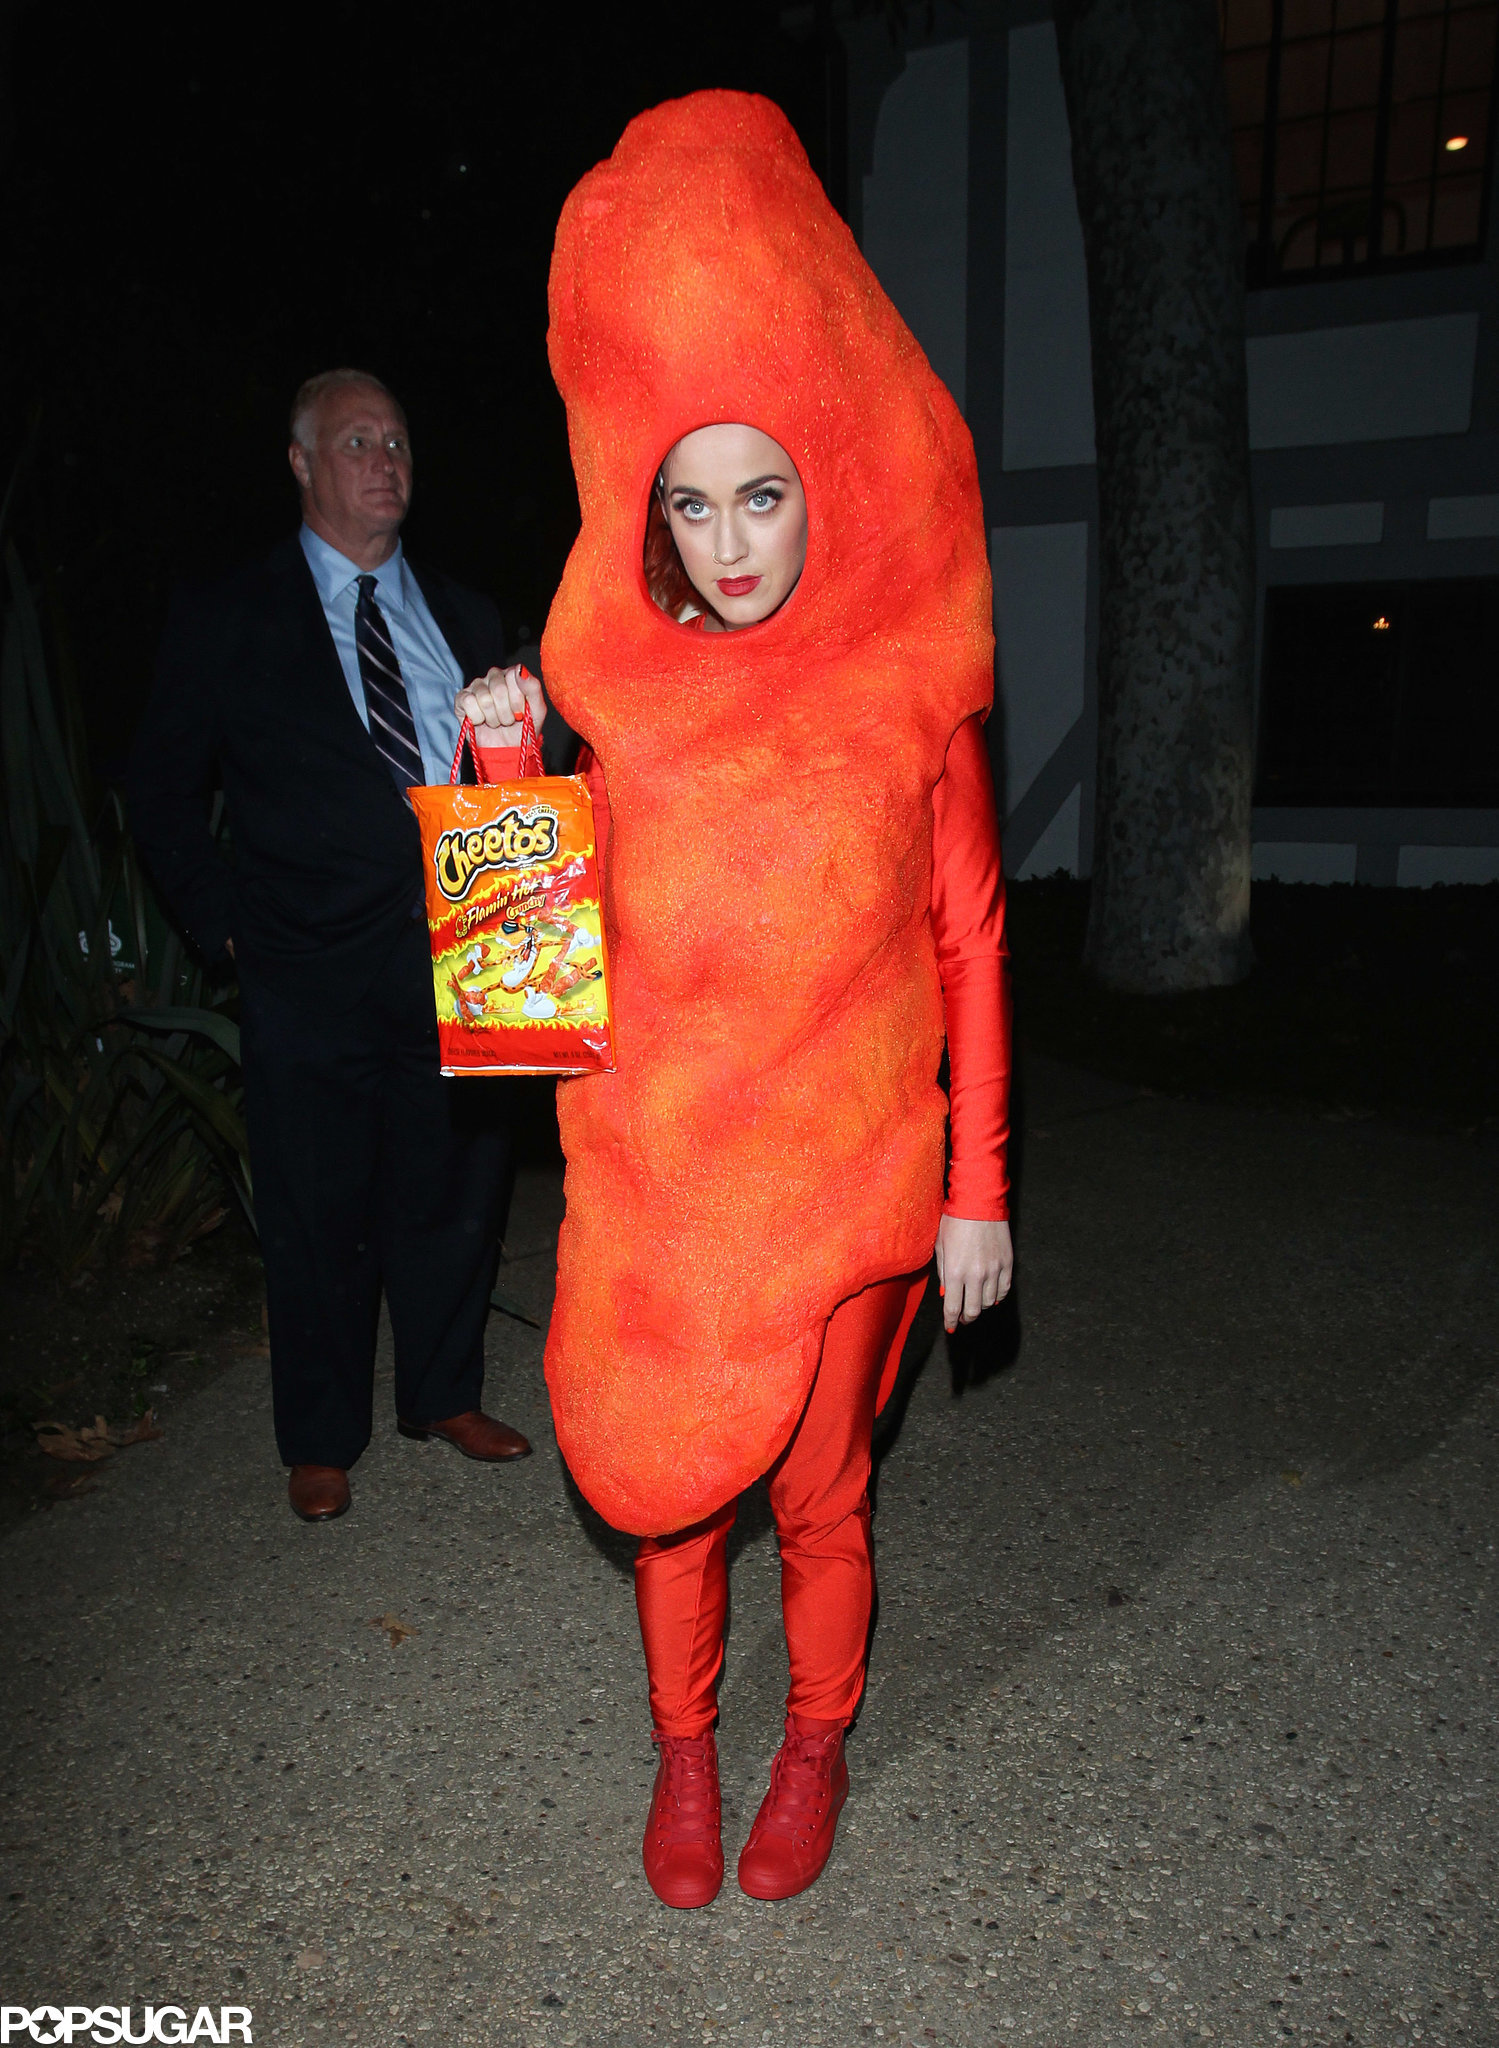 Oct 31,  · Katy Perry Turns Into a Flaming Hot Cheeto for Halloween Katy Perry is bright orange while dressing up as a Flaming Hot Cheeto to attend .